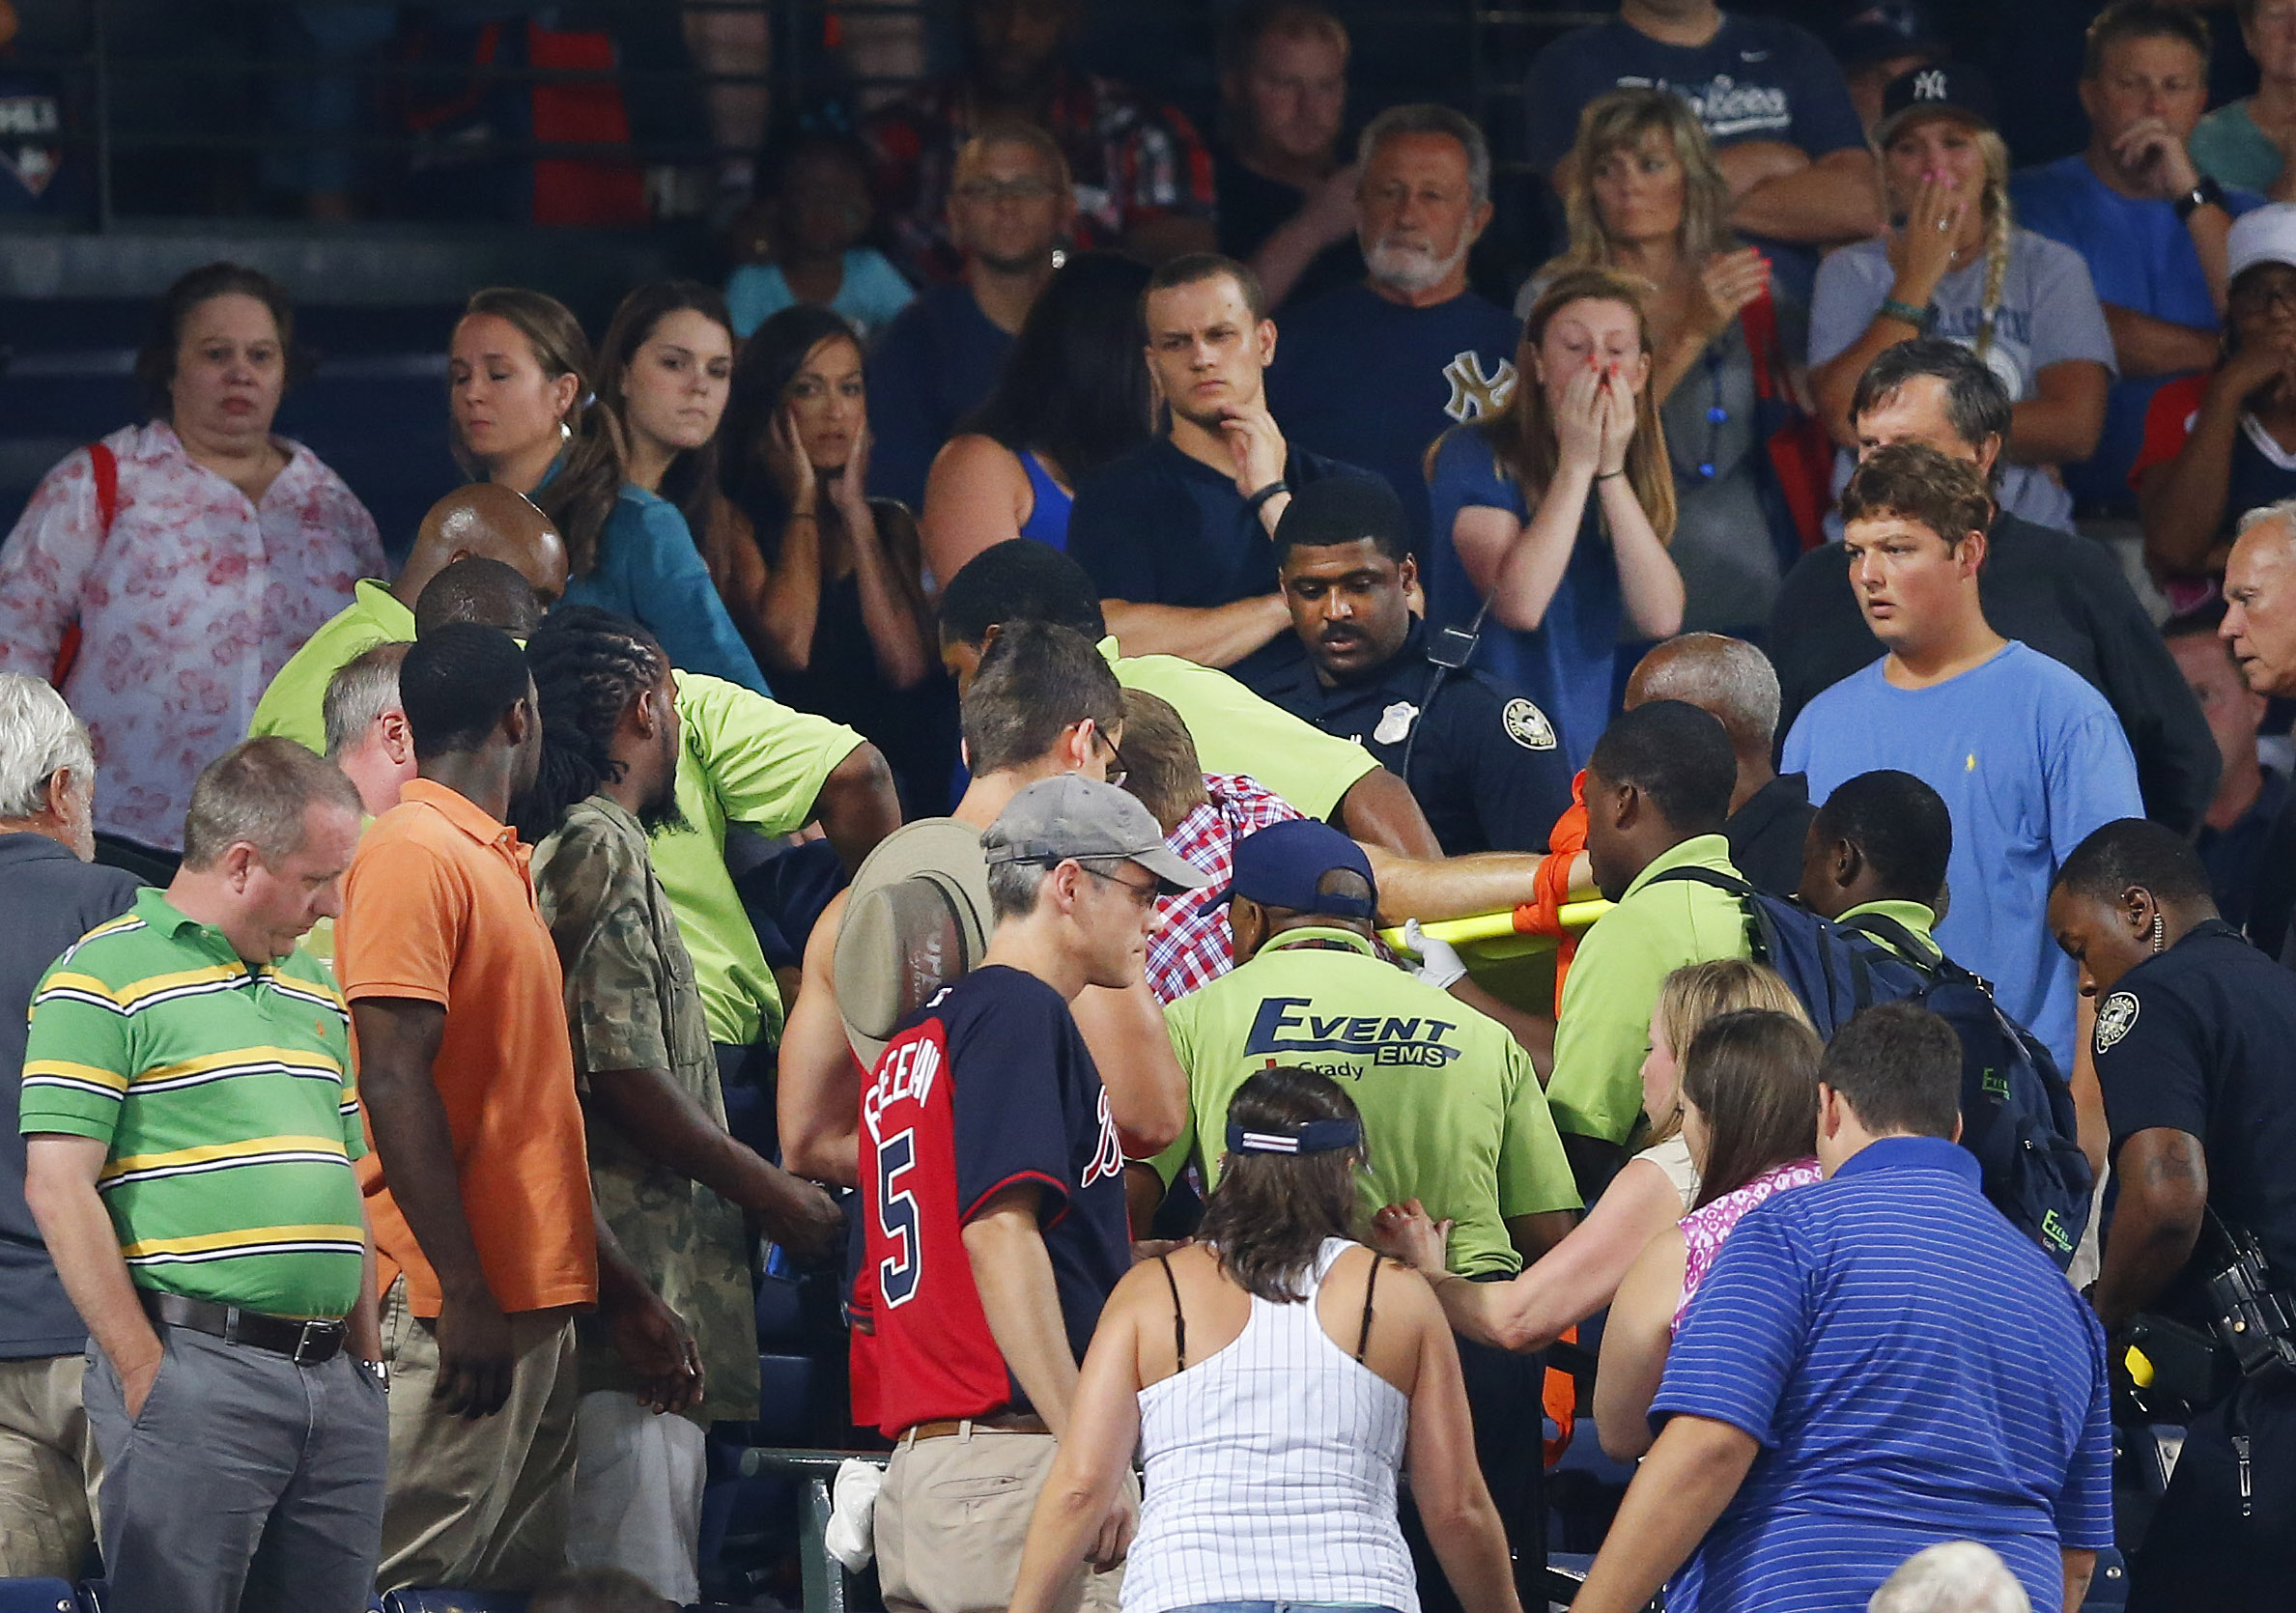 Rescue workers carry an injured fan from the stands at Turner Field during a baseball game between Atlanta Braves and New York Yankees Saturday, Aug. 29, 2015, in Atlanta. A fan has been given emergency medical treatment and been taken to a hospital after